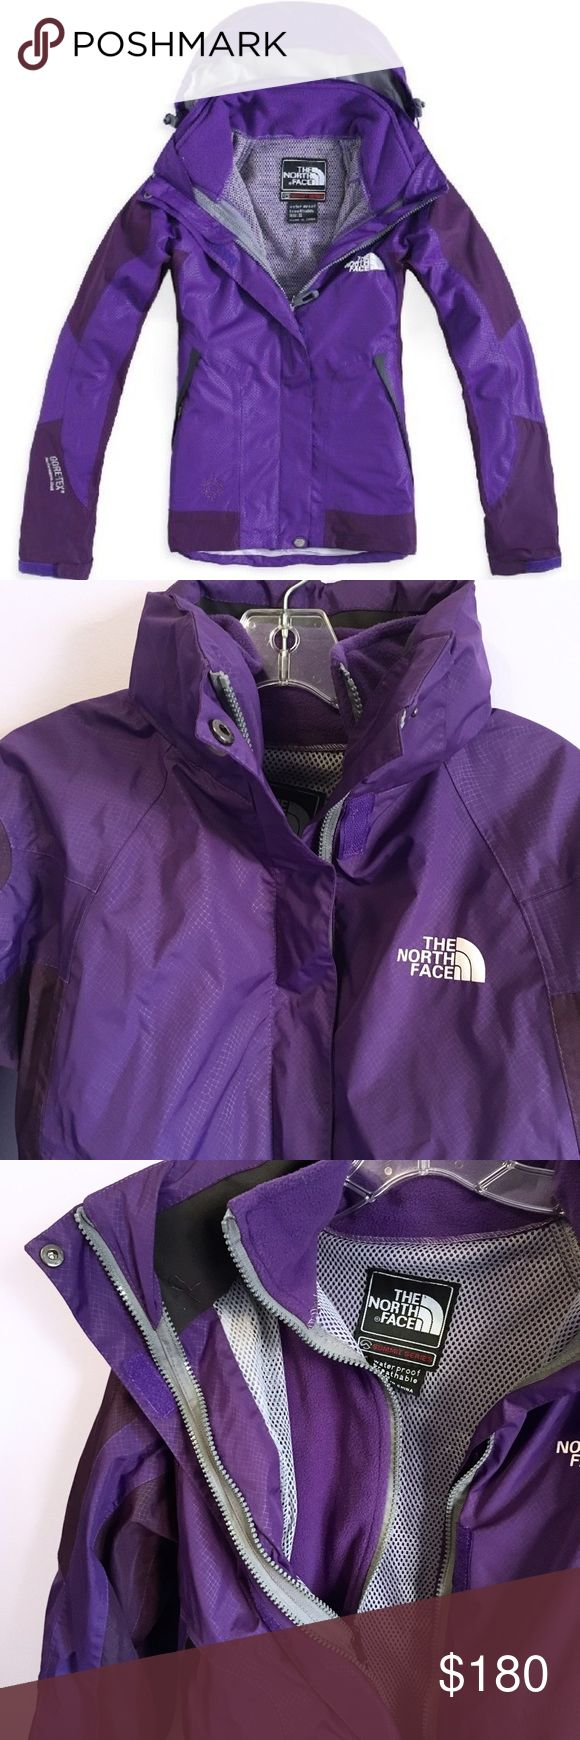 North Face Purple Summit Series GoreTex Coat This beautiful winter coat is actually comprised of two layers that zip together; you get two coats in one! The inner layer is a solid purple fleece jacket. The outer is a thick, waterproof windbreaker with a hood. It's in terrific condition, only worn a few times. True to size, but I wear a size S and the fit is still comfortable on me. North Face Jackets & Coats